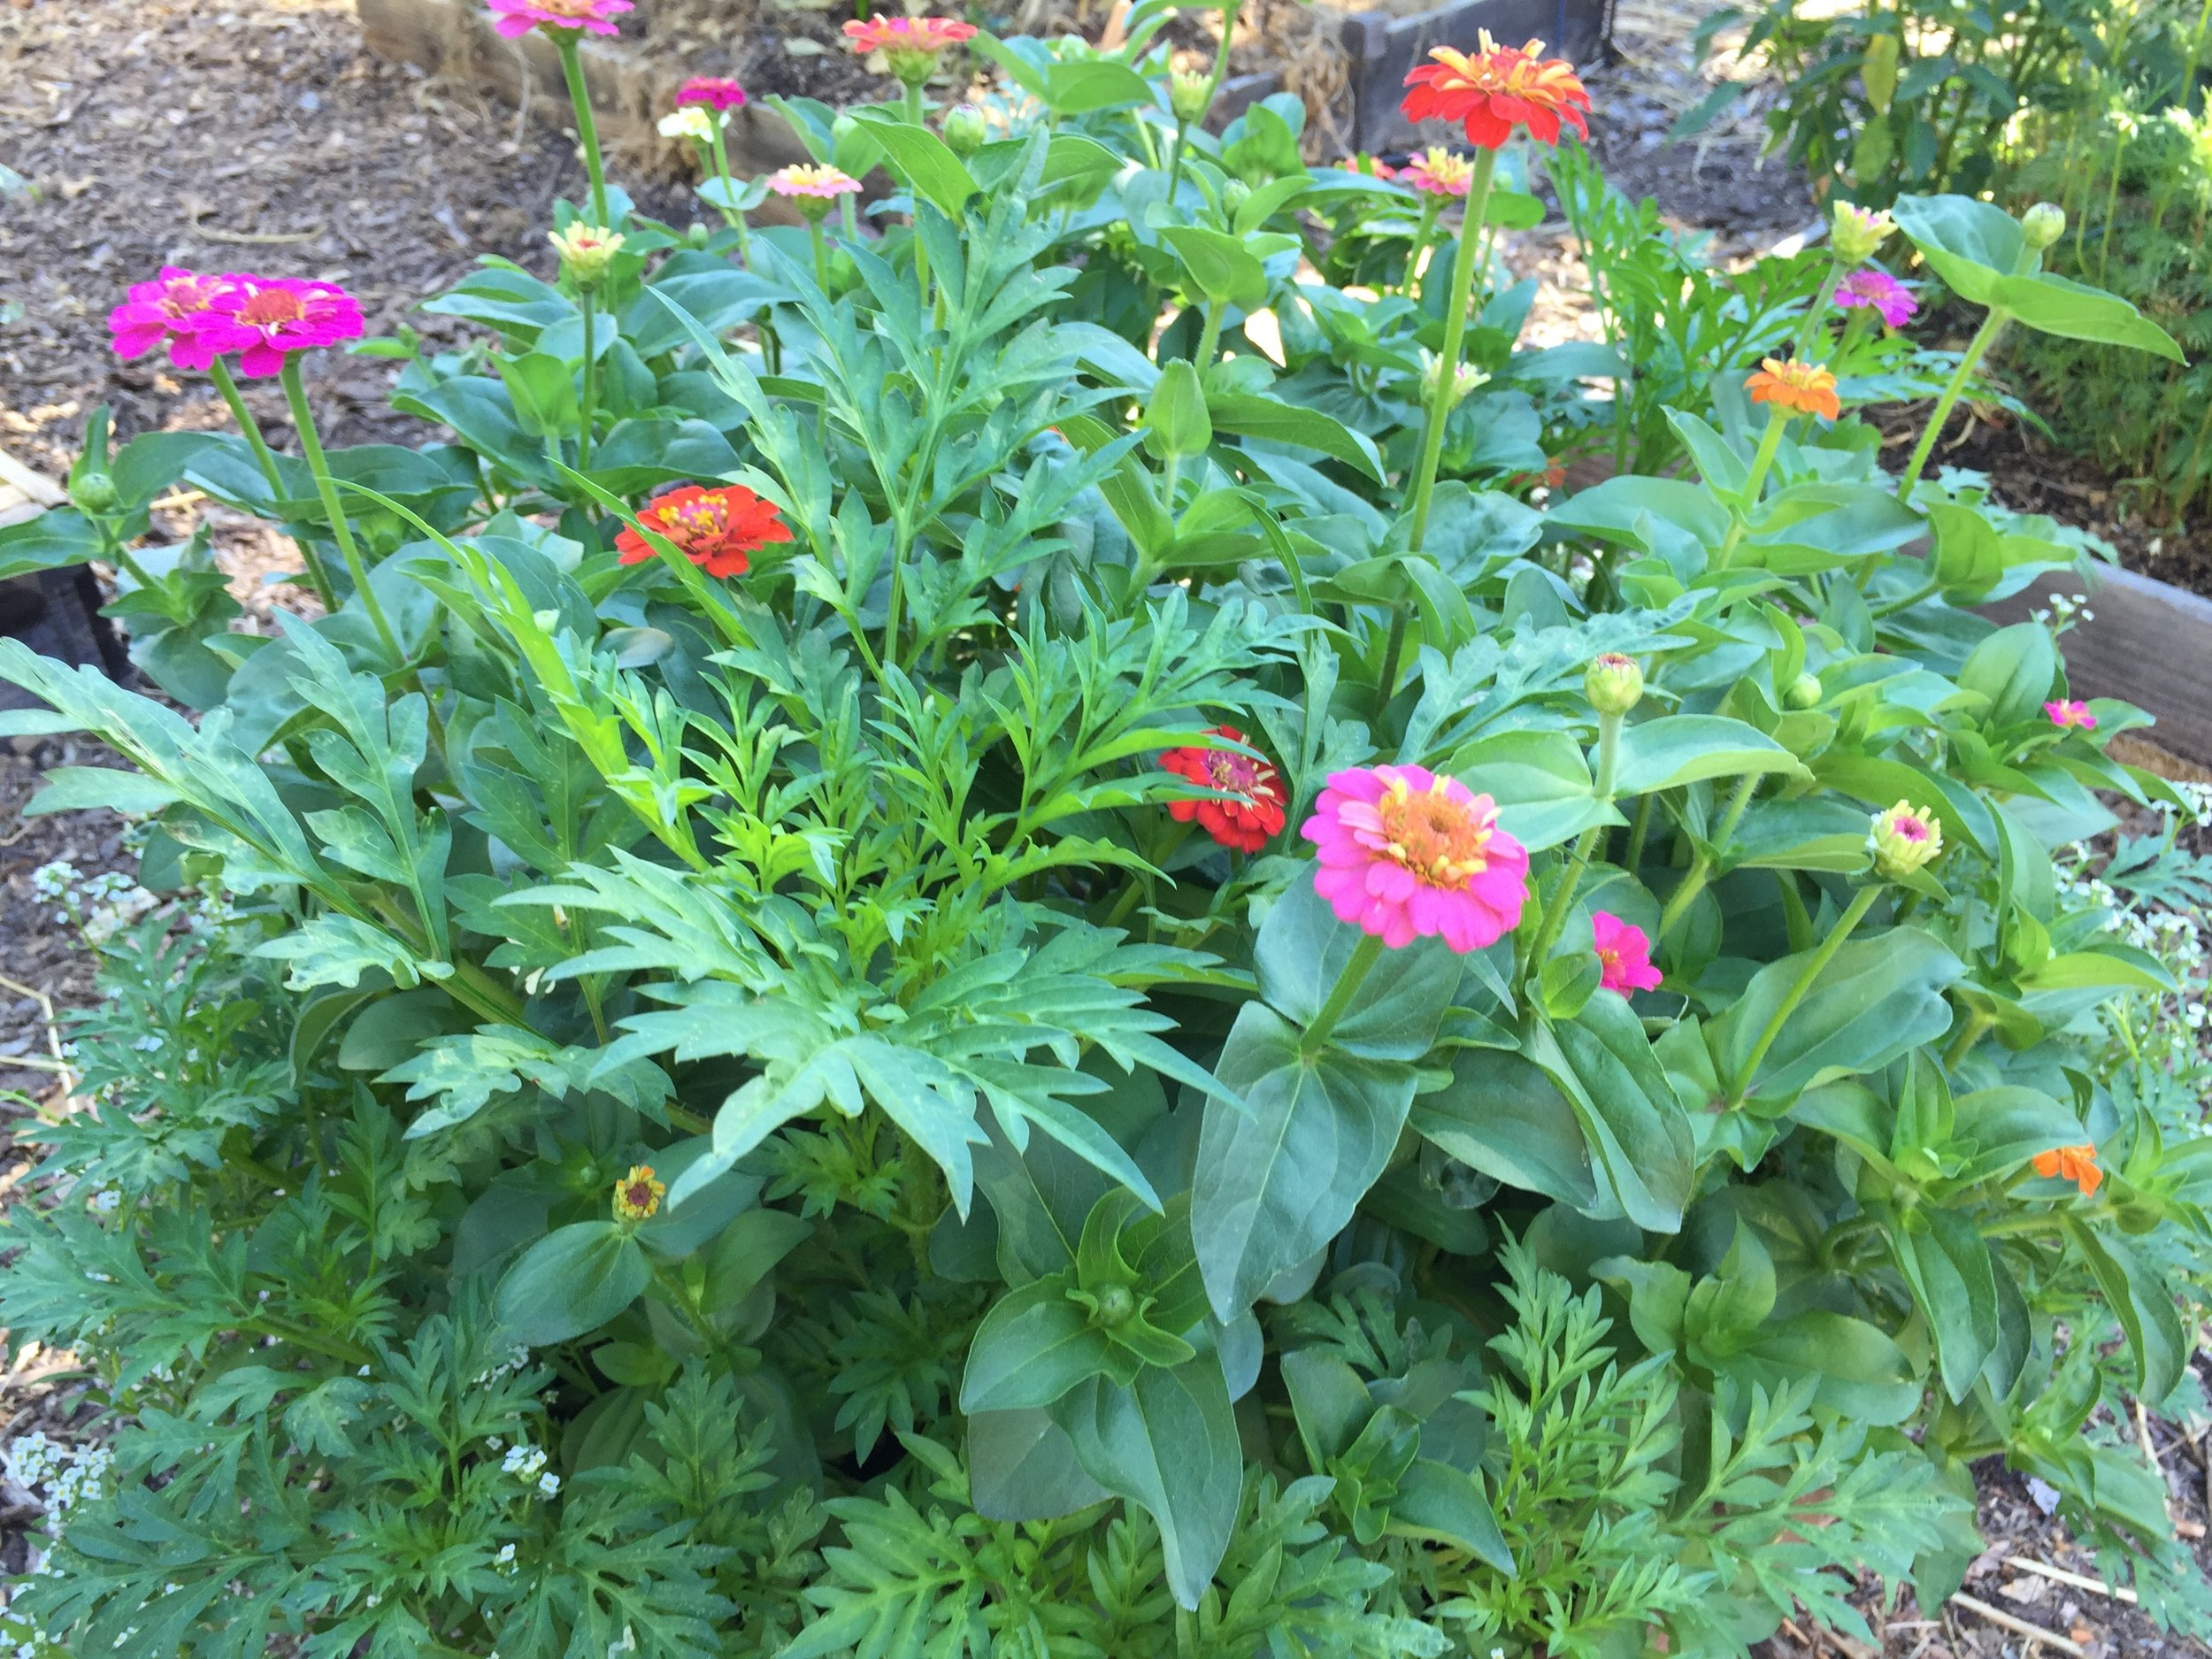 Zinnias and cosmos are my staple summer flower, and I seed them in every corner I can find. Finally, they are starting to bloom.